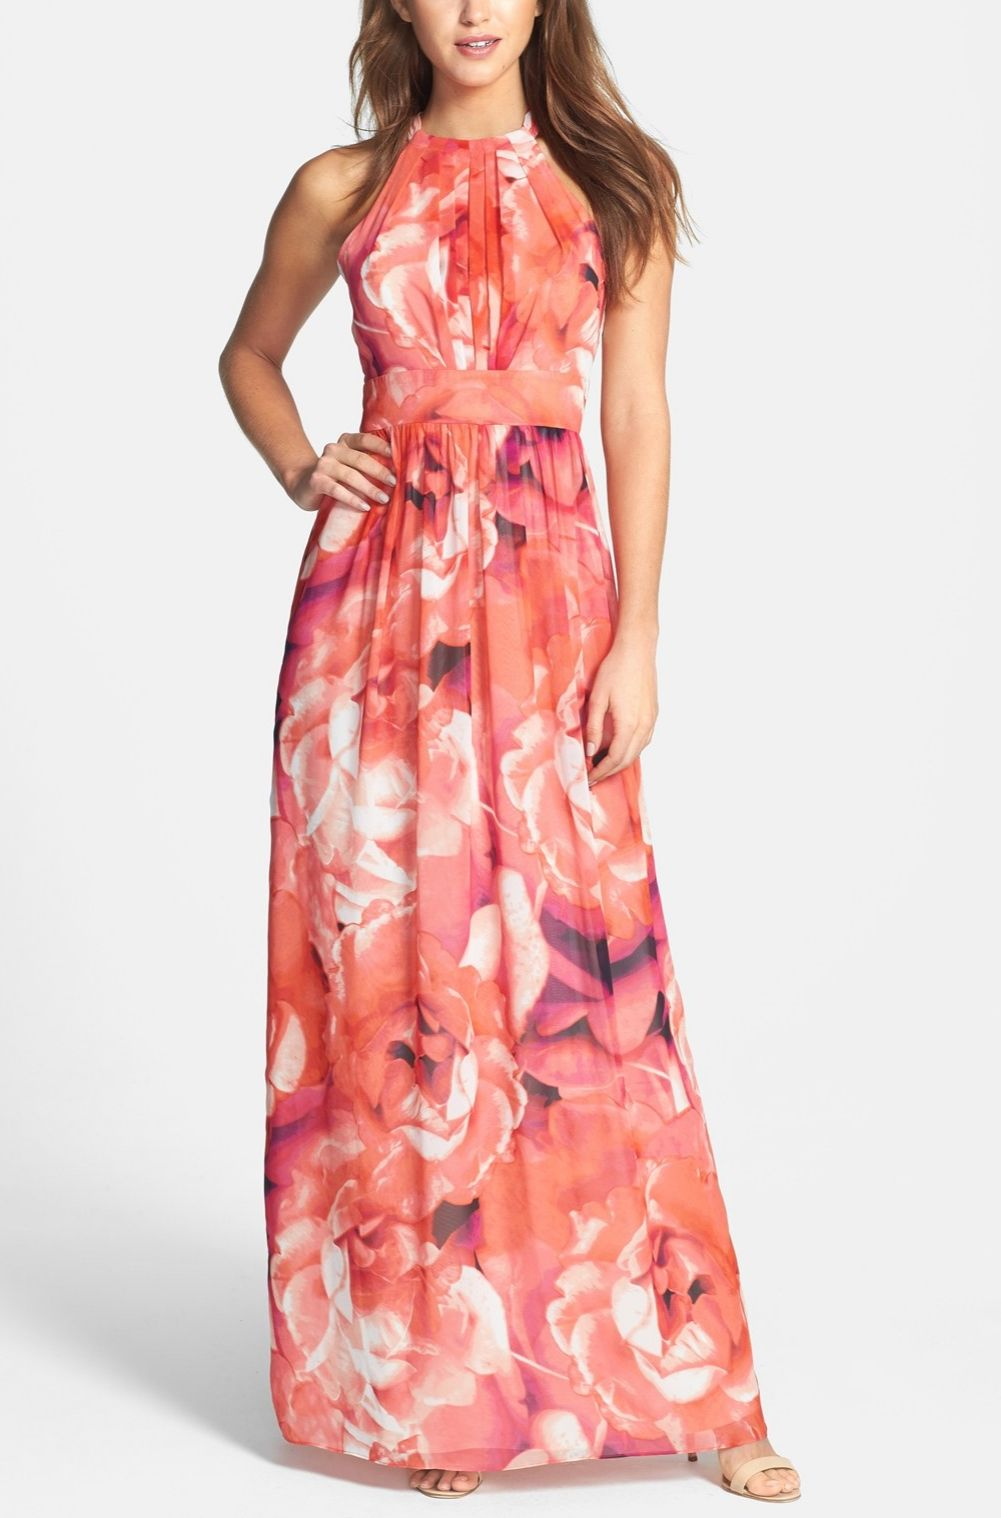 Crushing on this floral pink maxi dress. | Top Pins: Nordstrom.com ...